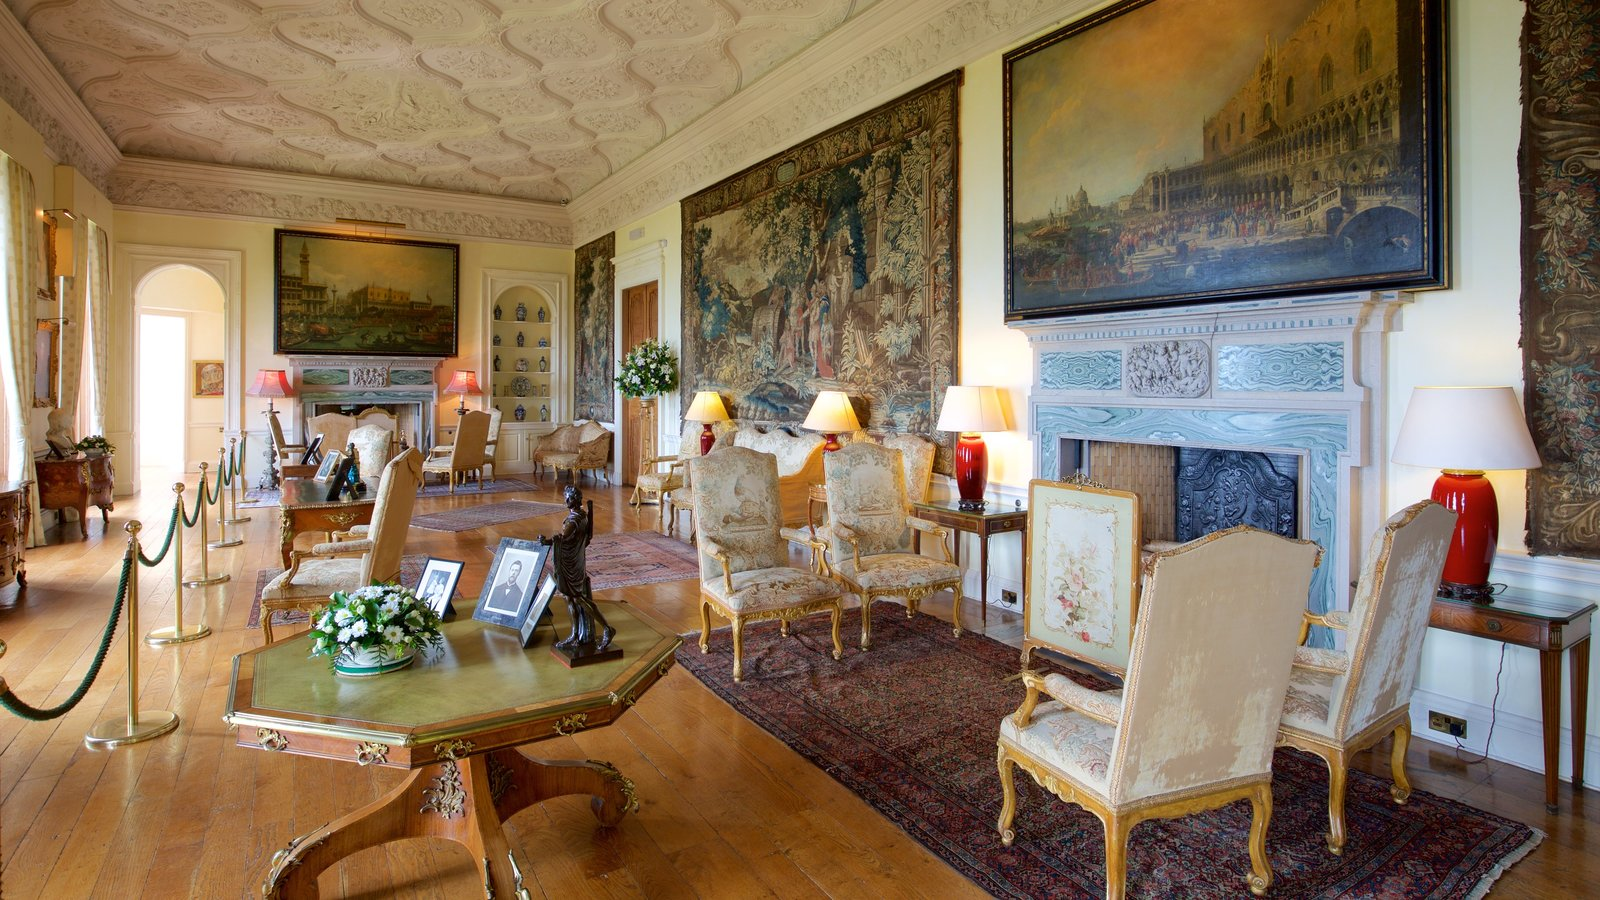 Dunrobin Castle featuring chateau or palace, interior views and heritage elements